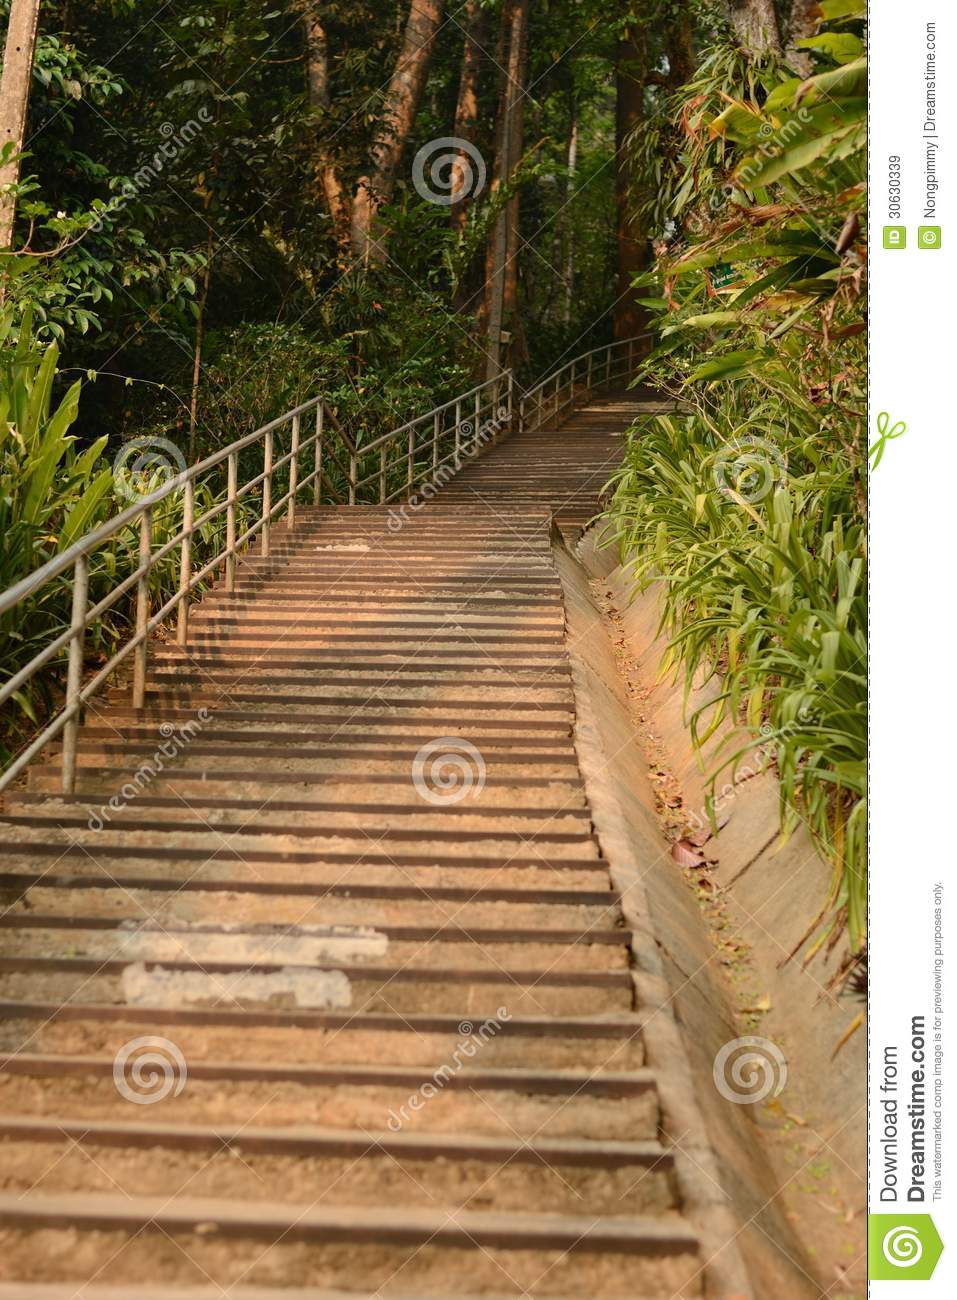 Stairs to the mountain